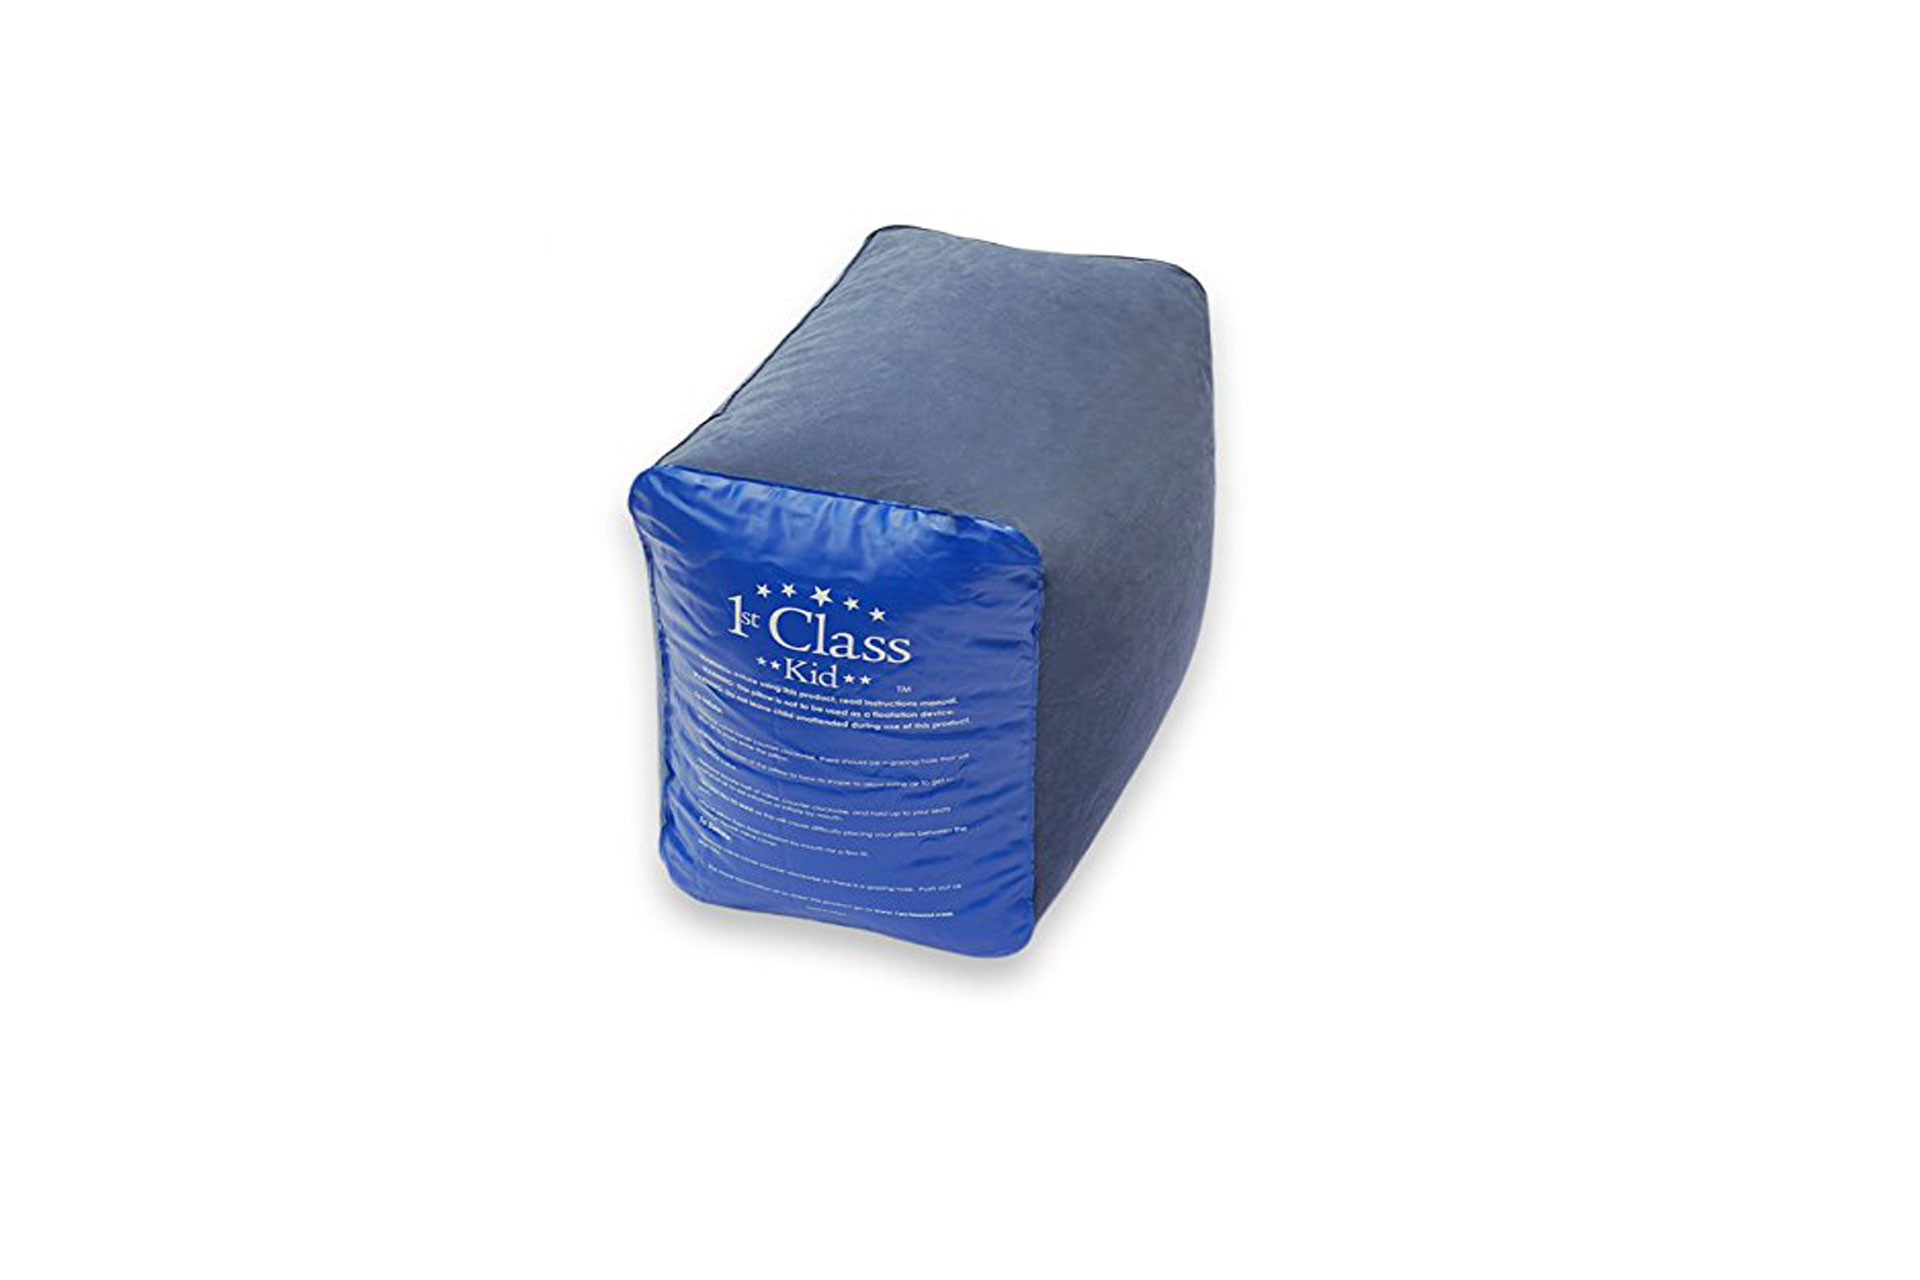 1st Class Kid Travel Pillow Inflatable Footrest